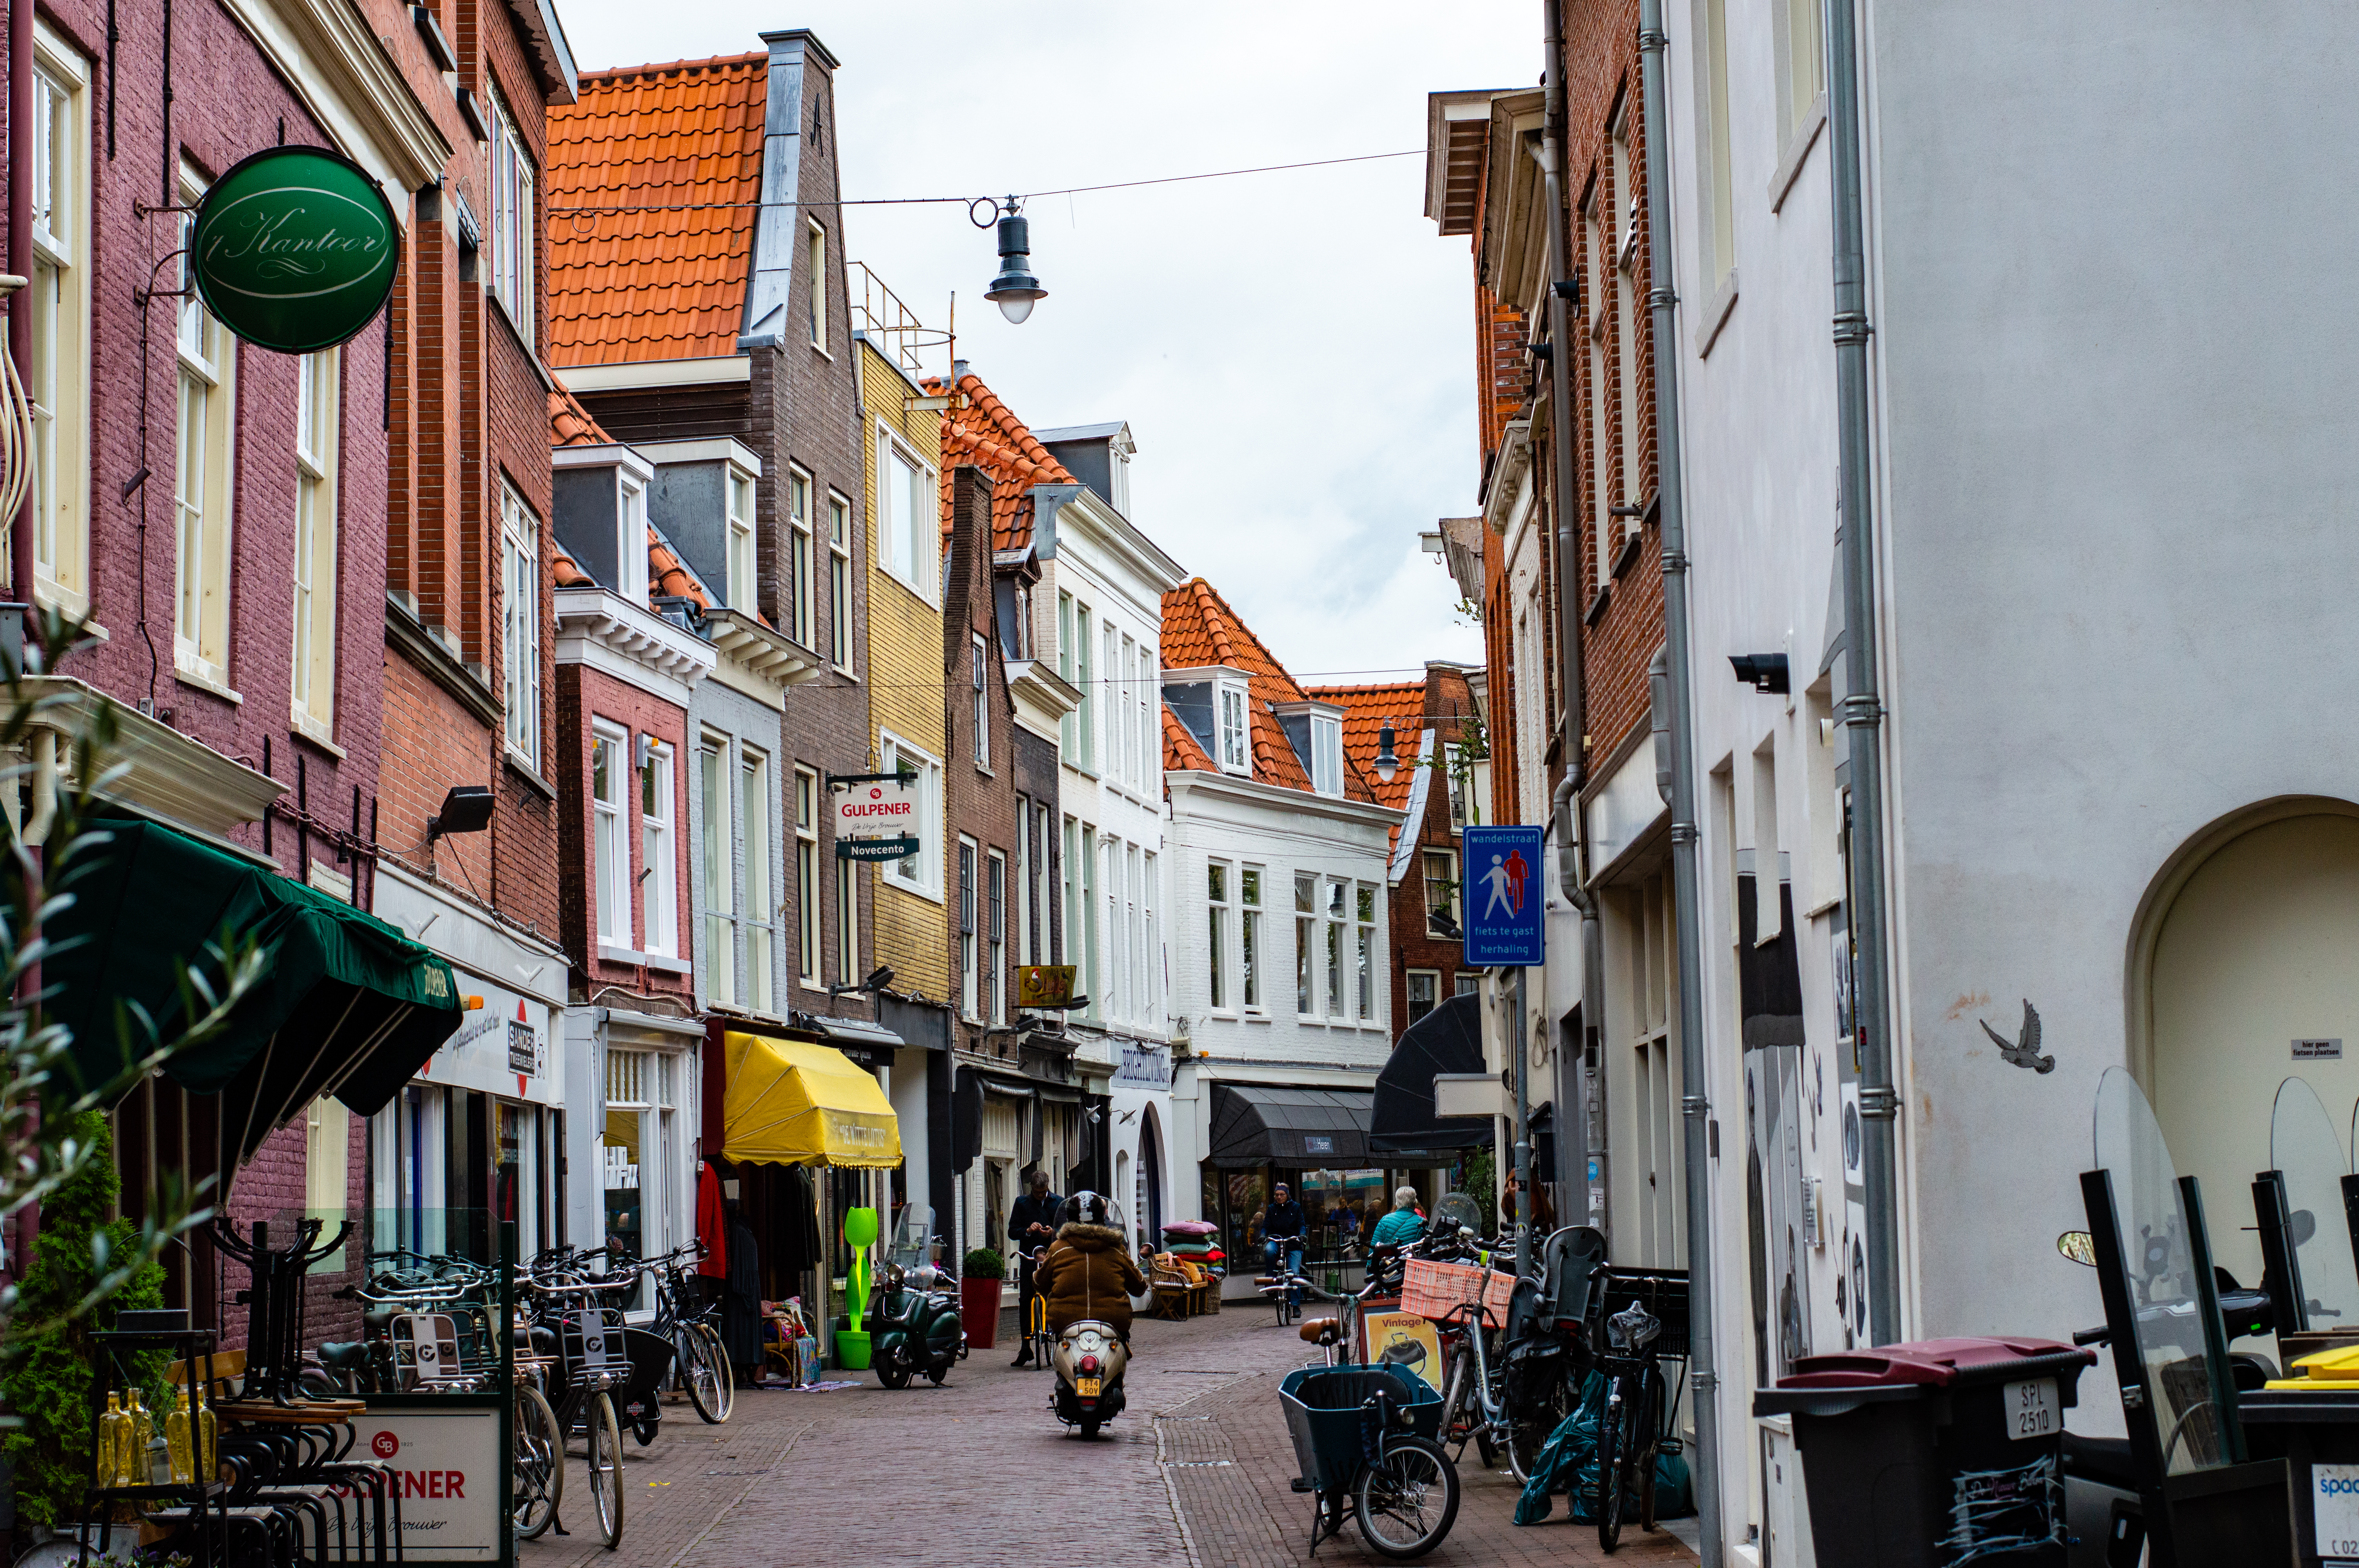 A Narrow Dutch Street in Haarlem